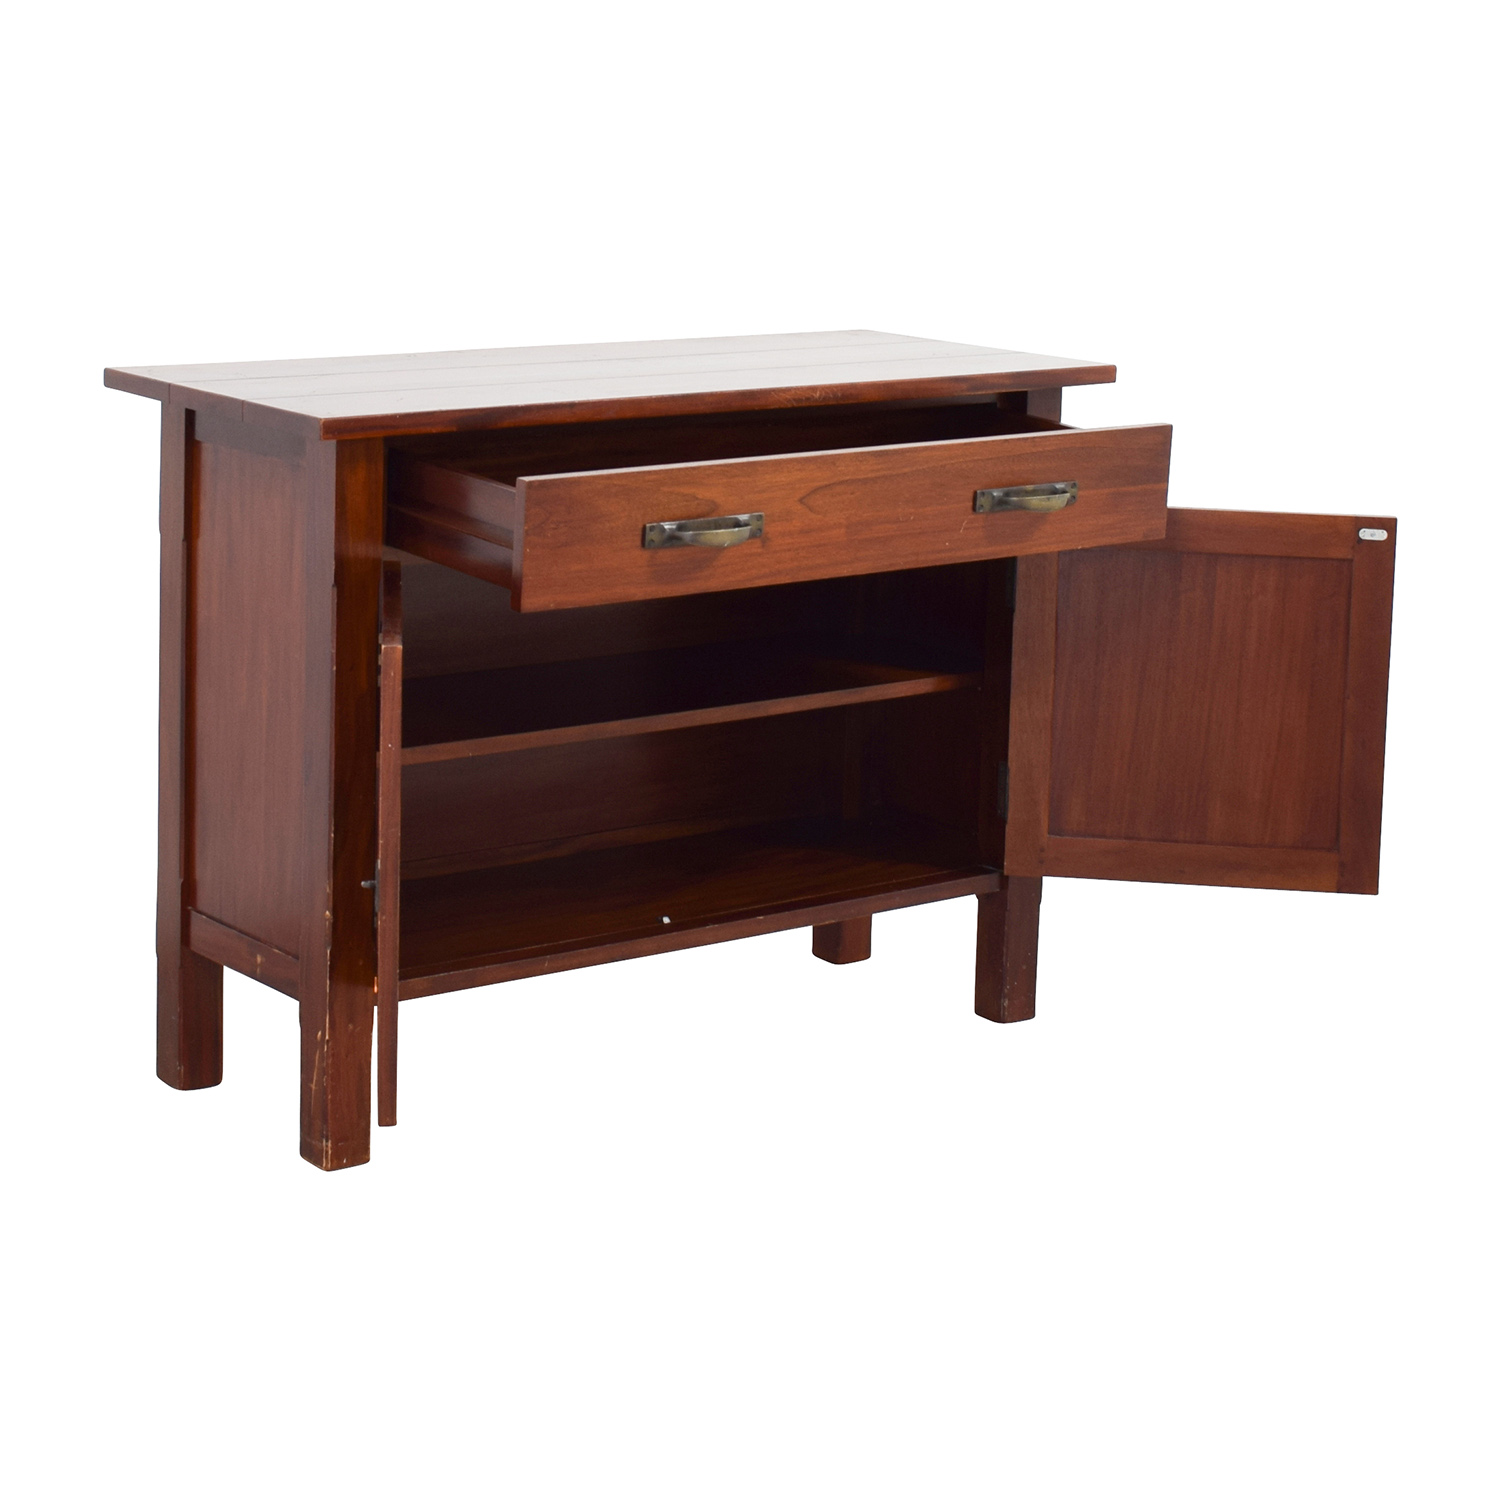 86% OFF Pottery Barn Pottery Barn Medium Sideboard with Storage Storage